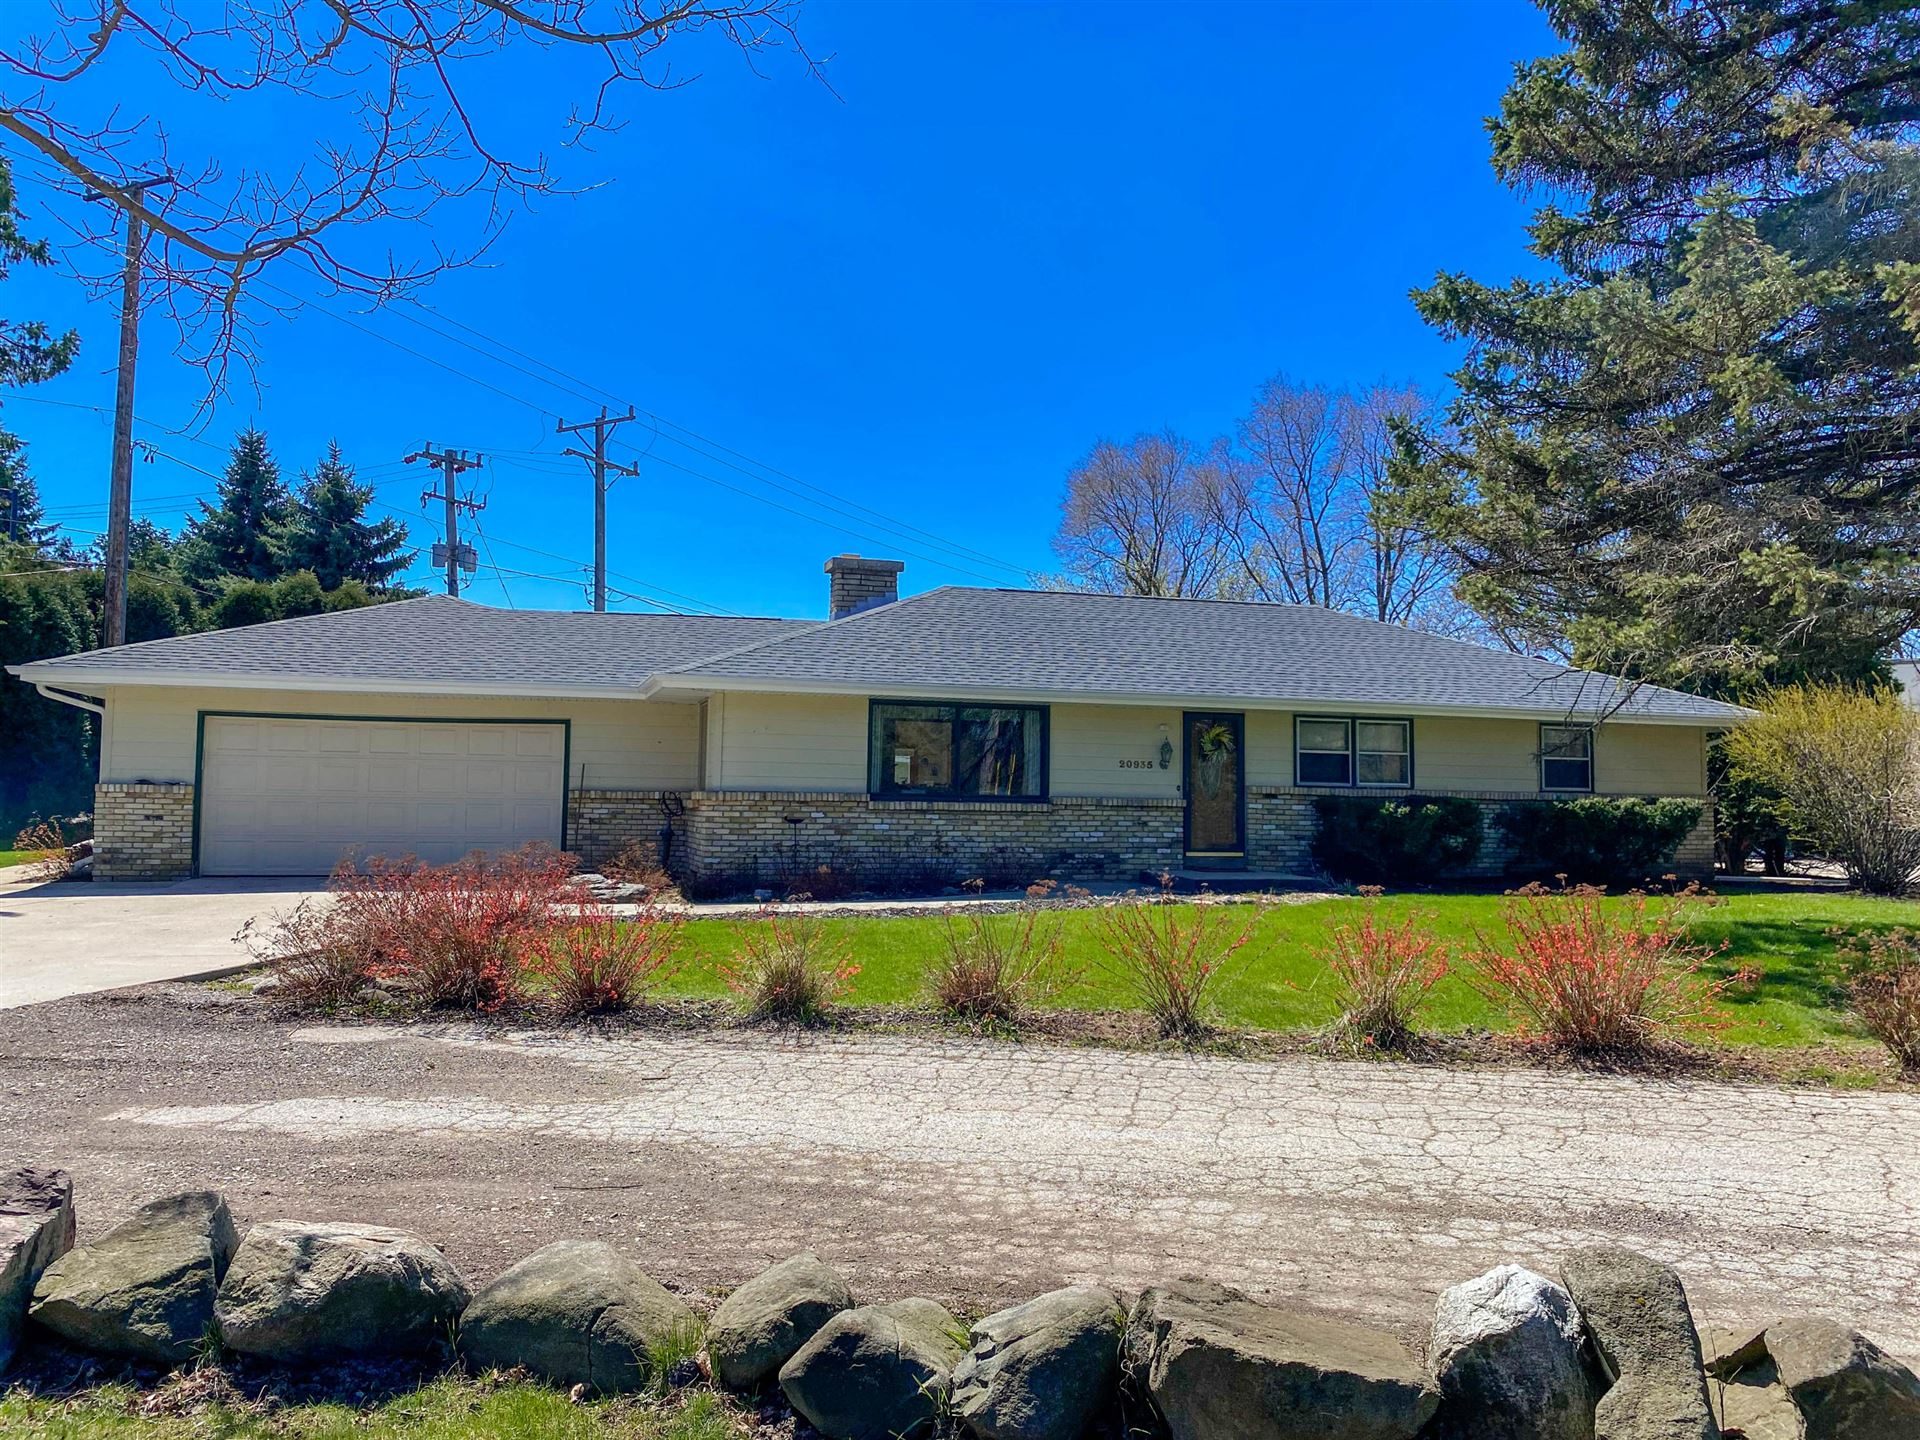 20935 Watertown Rd, Brookfield, WI 53186 - #: 1675874